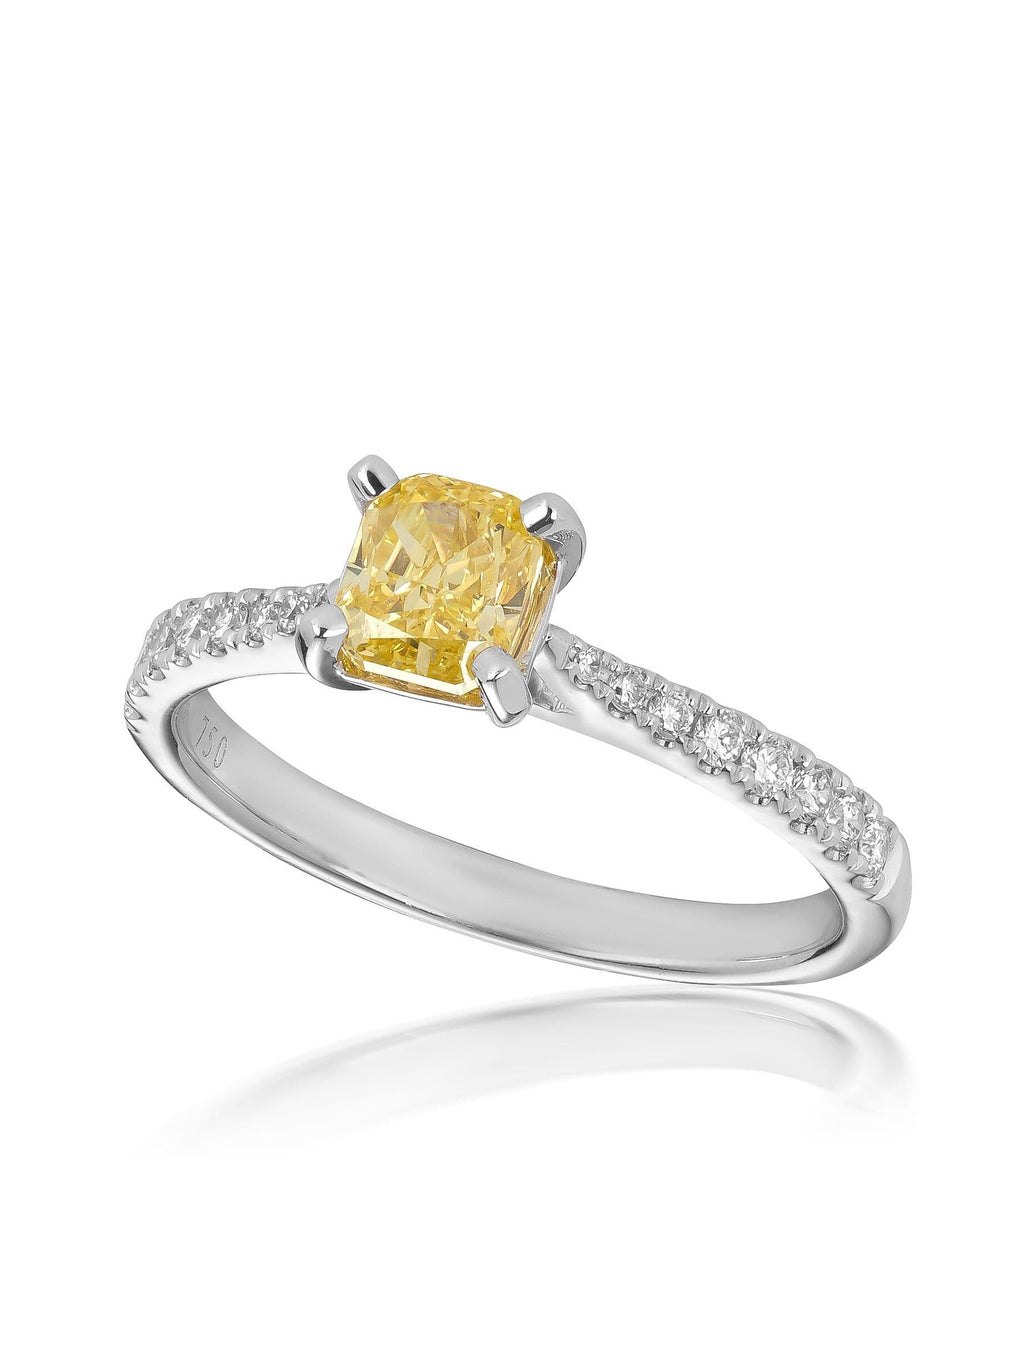 Signature Radiant Cut Yellow Diamond Ring